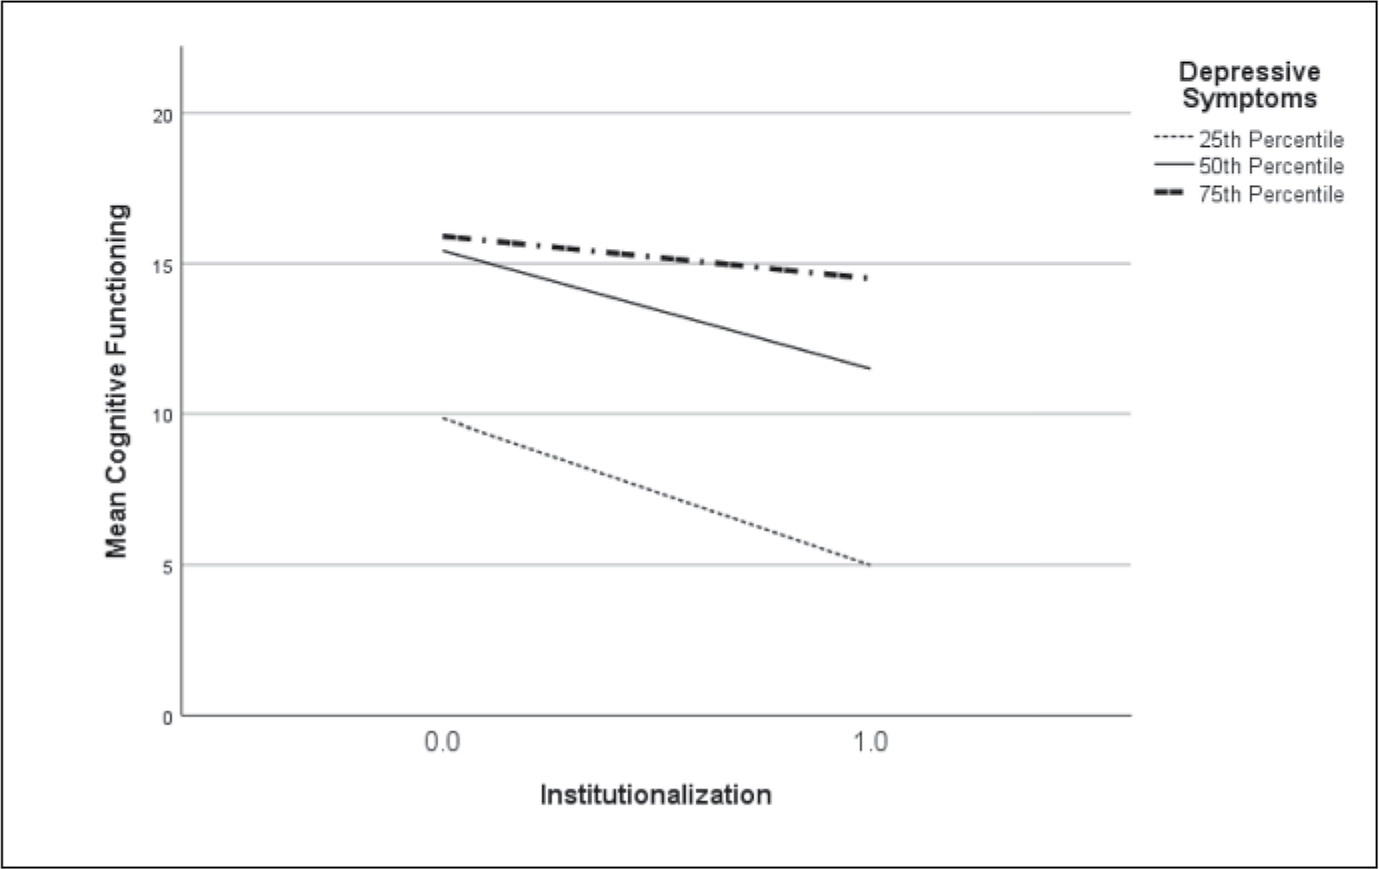 The relationship between cognitive functioning, depressive symptoms, and institutionalization over time.